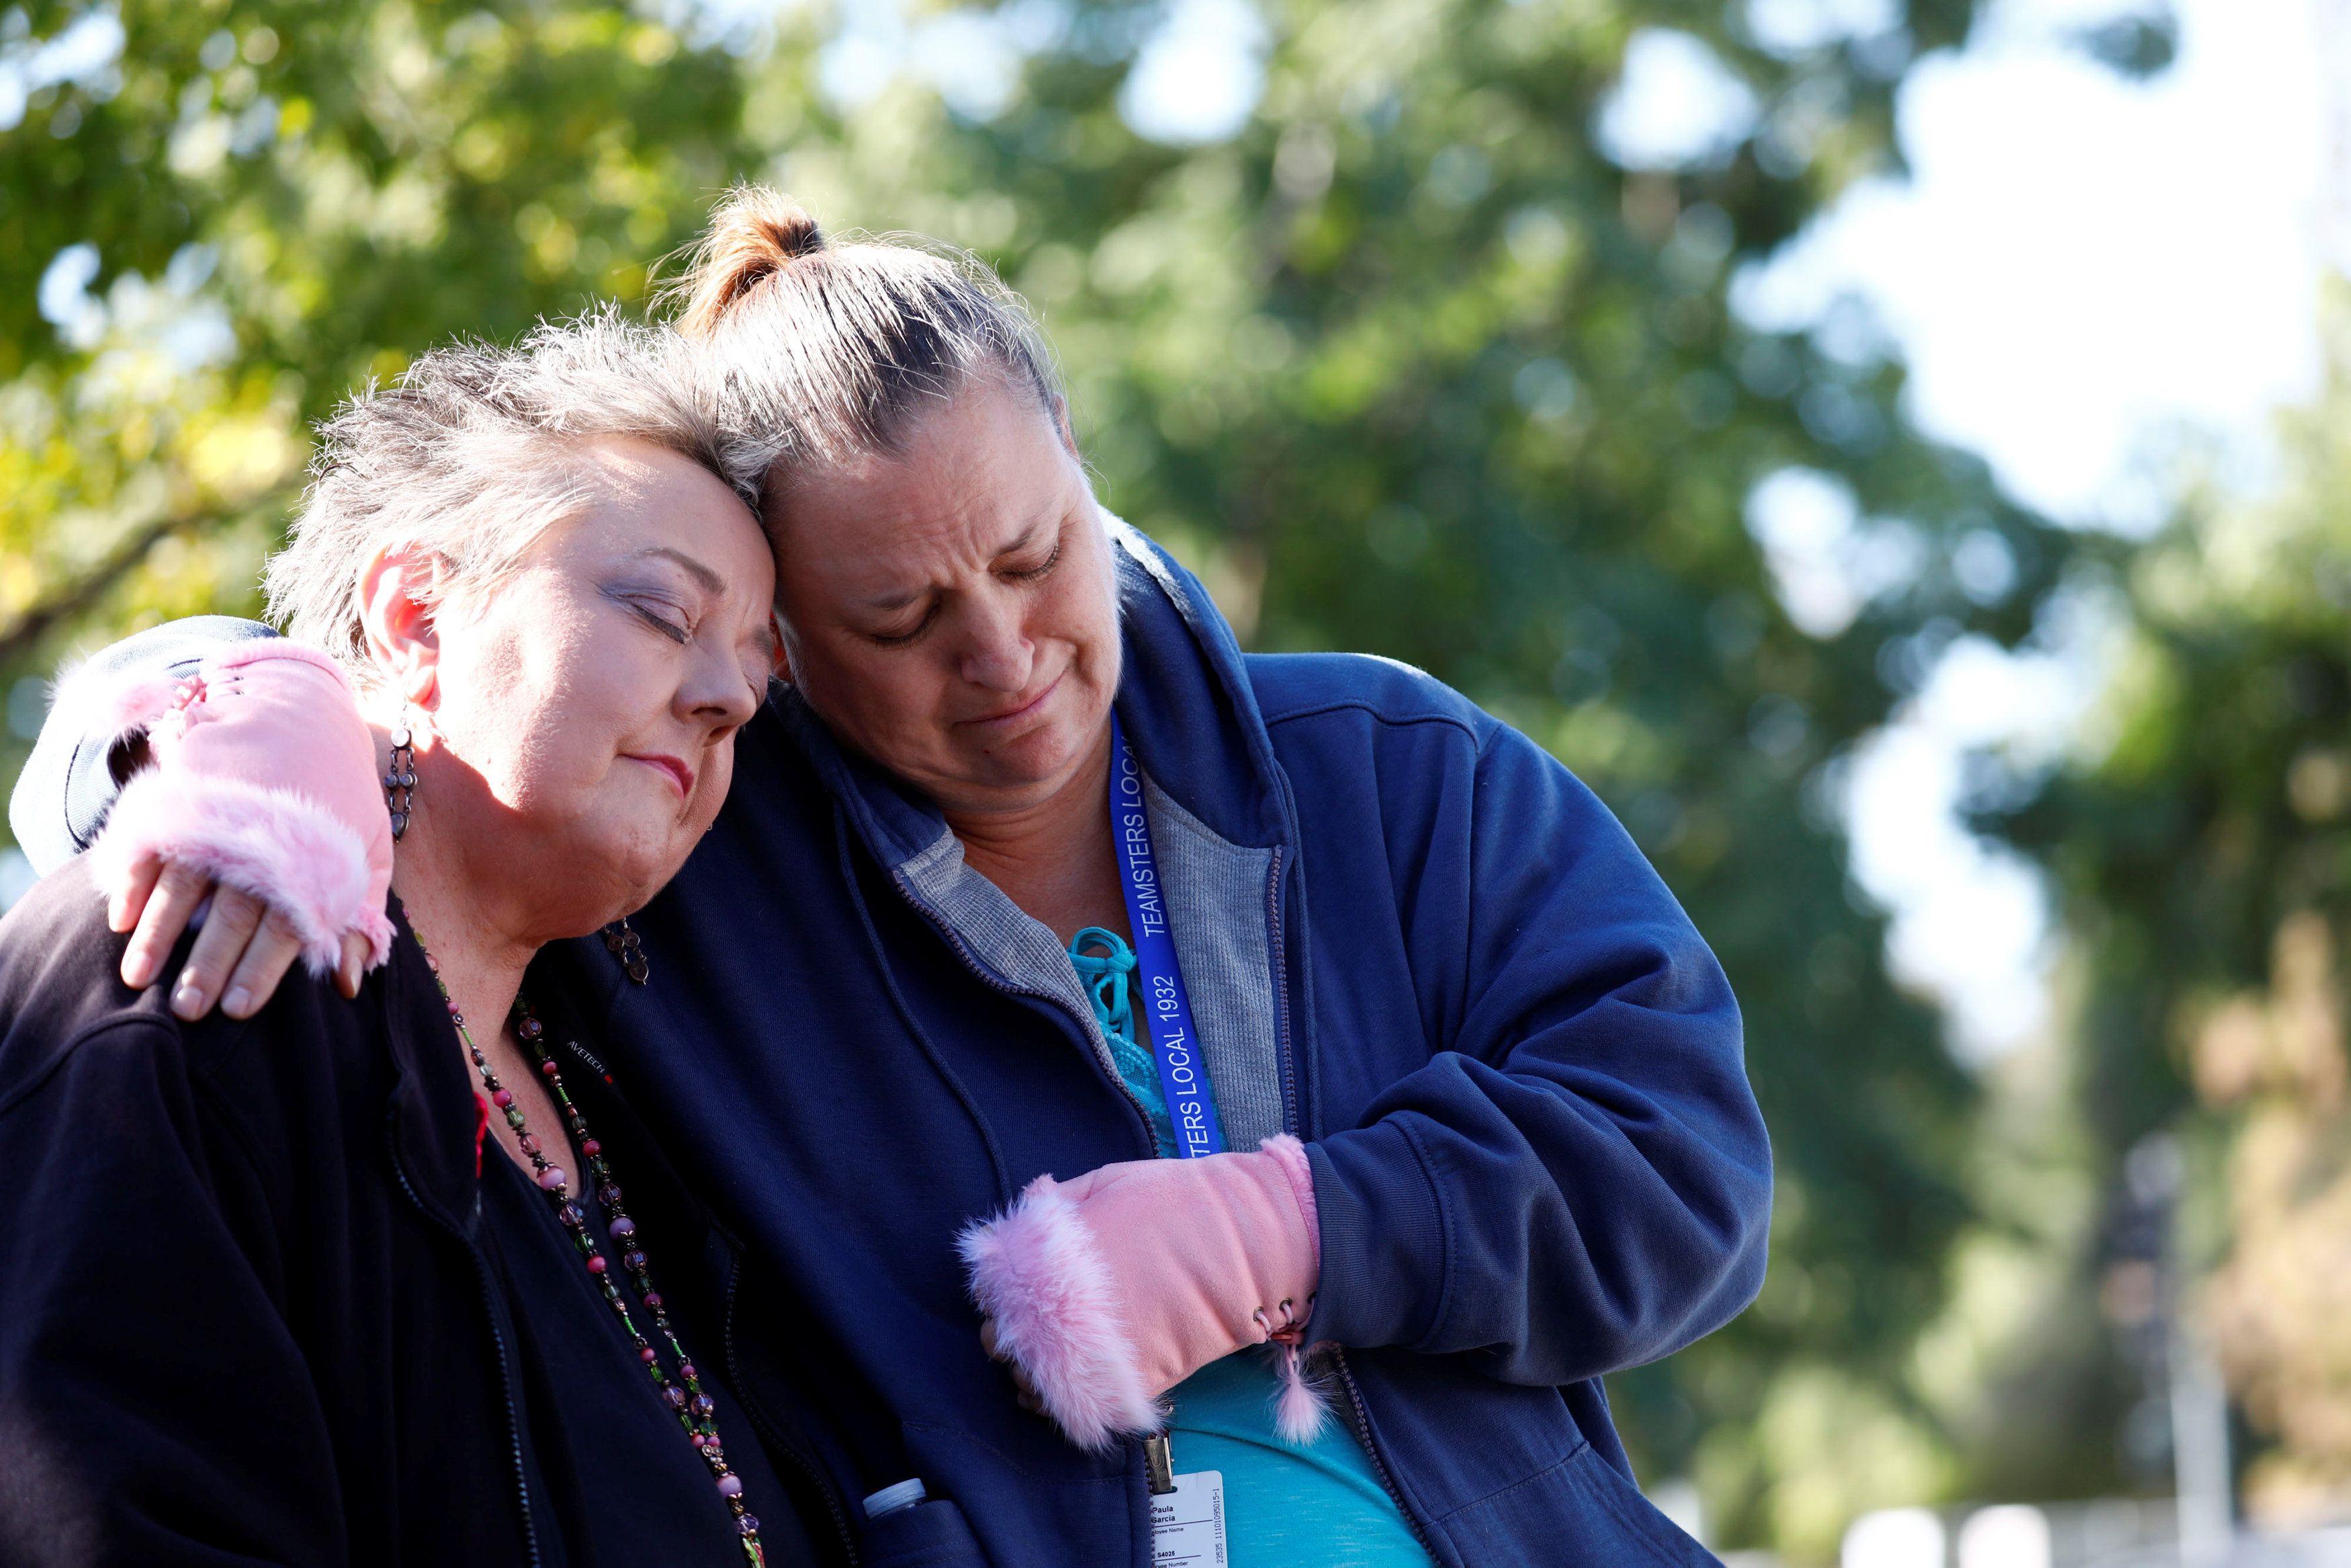 San Bernardino County employees Zen Martinsen (L) and Paula Garcia (R), hug during a memorial event at the Inland Regional Center on the one year anniversary of the San Bernardino attack in San Bernardino,